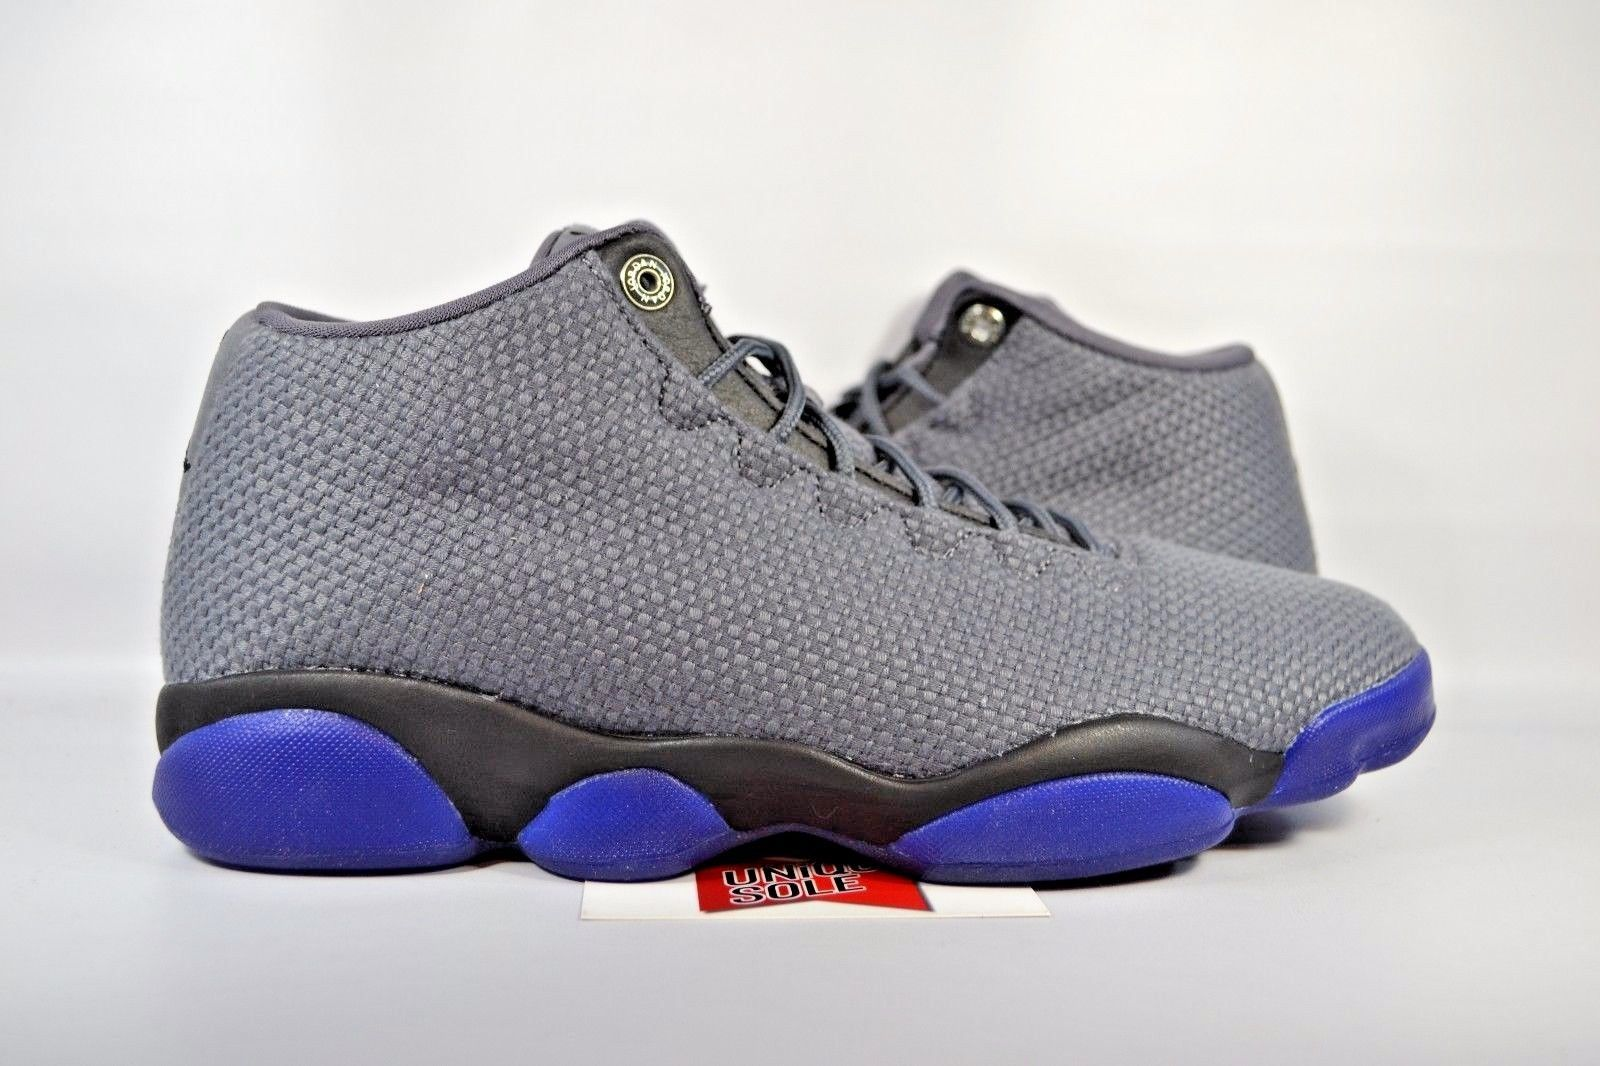 newest collection 03db1 f9dea NEW Nike Jordan Horizon Low DARK GREY CONCORD PURPLE 845098-002 sz 9